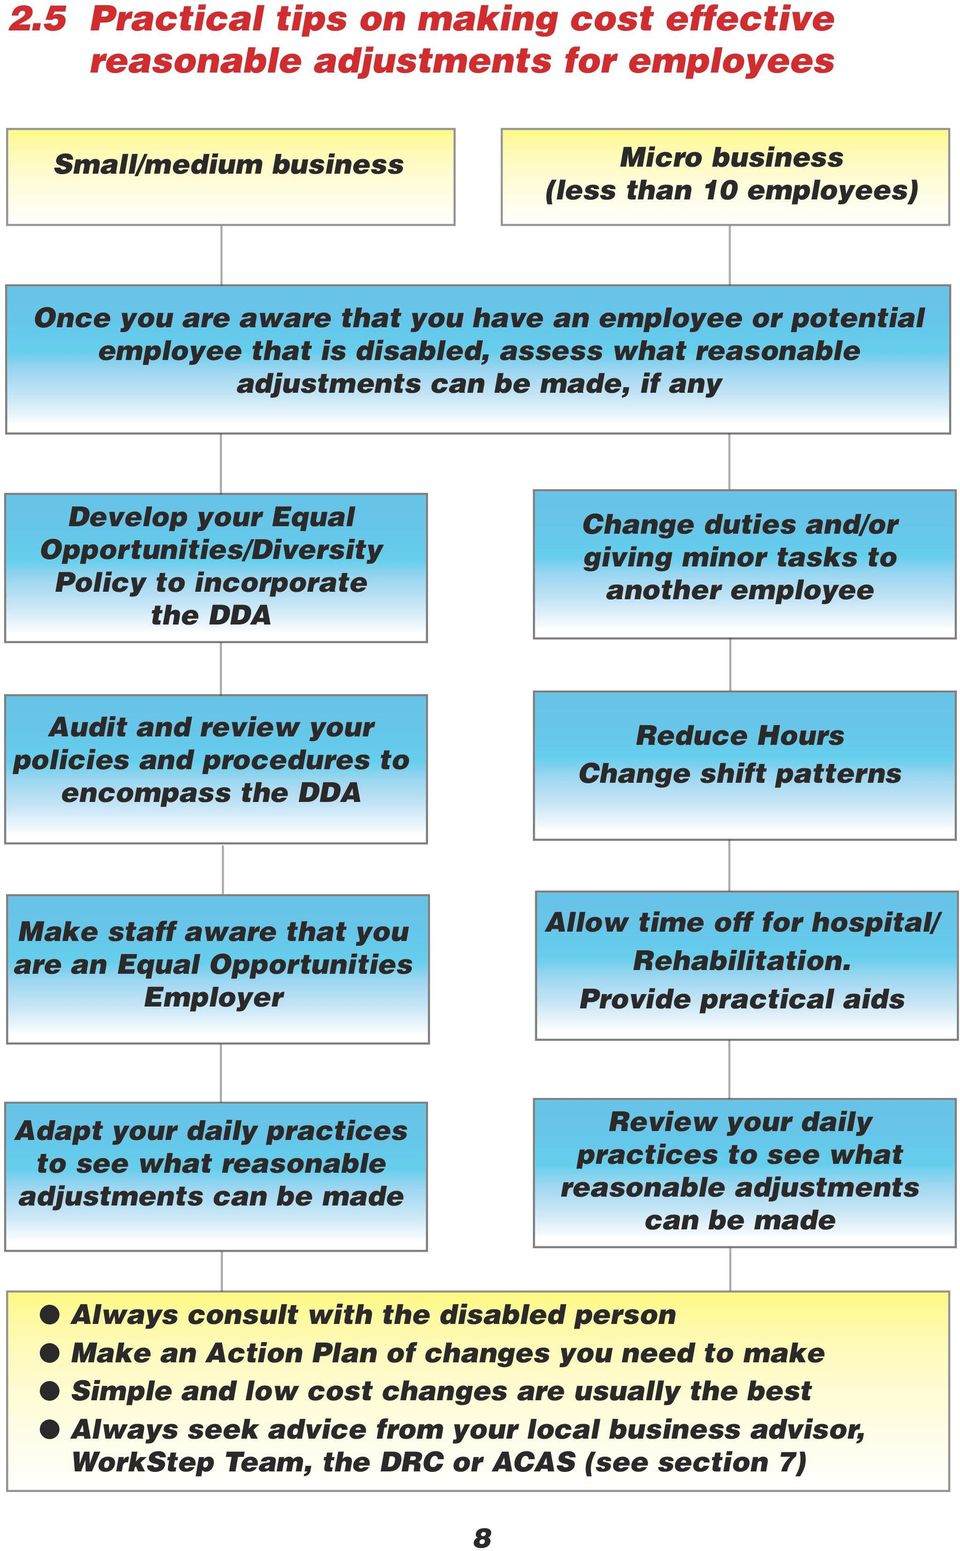 tasks to another employee Audit and review your policies and procedures to encompass the DDA Reduce Hours Change shift patterns Make staff aware that you are an Equal Opportunities Employer Allow